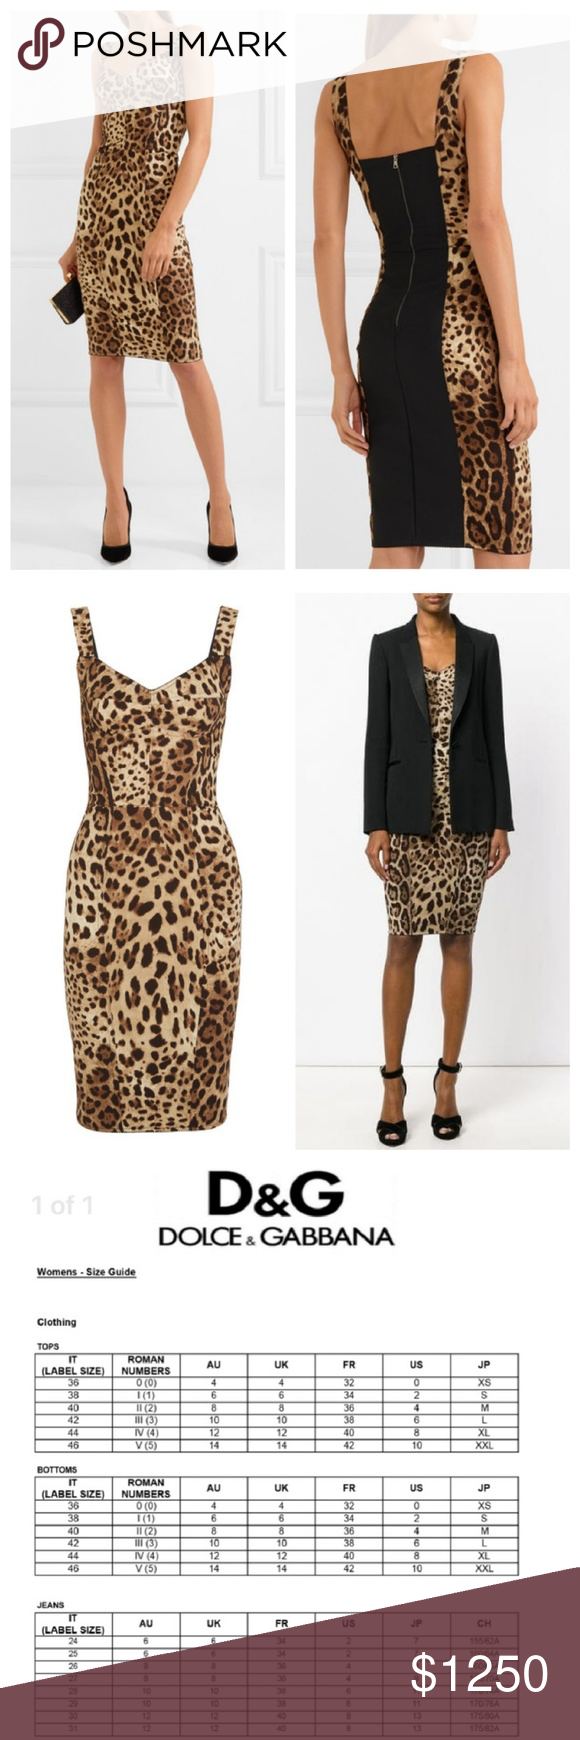 Dolce Gabbana Leopard Dress Stunning Print Panel New With Tags See Posted Size Chart For Conversion From Italy To Us